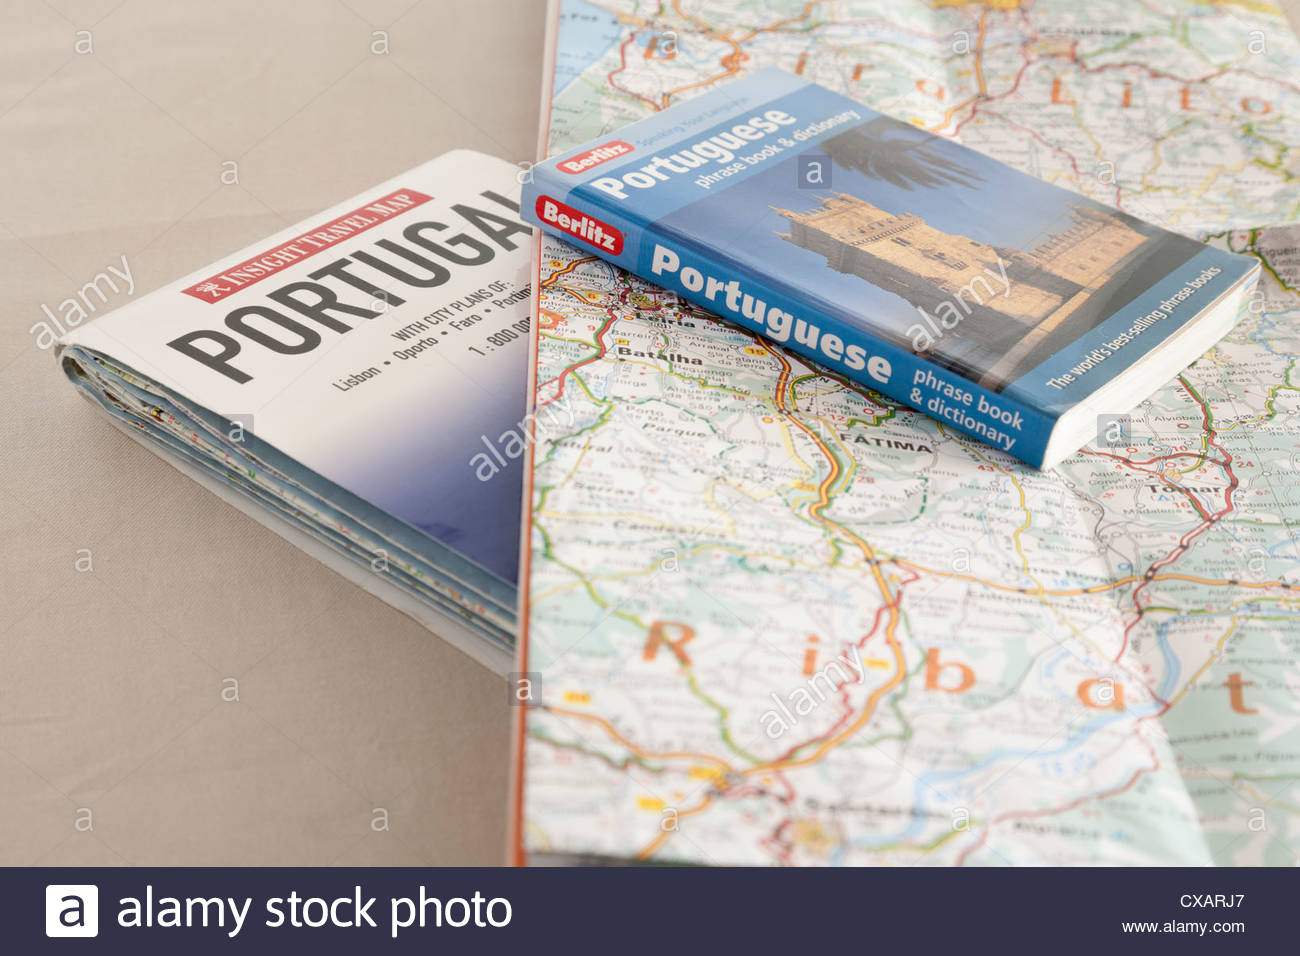 two maps of Portugal and a Berlitz Portuguese Phrase book and dictionary - Stock Image